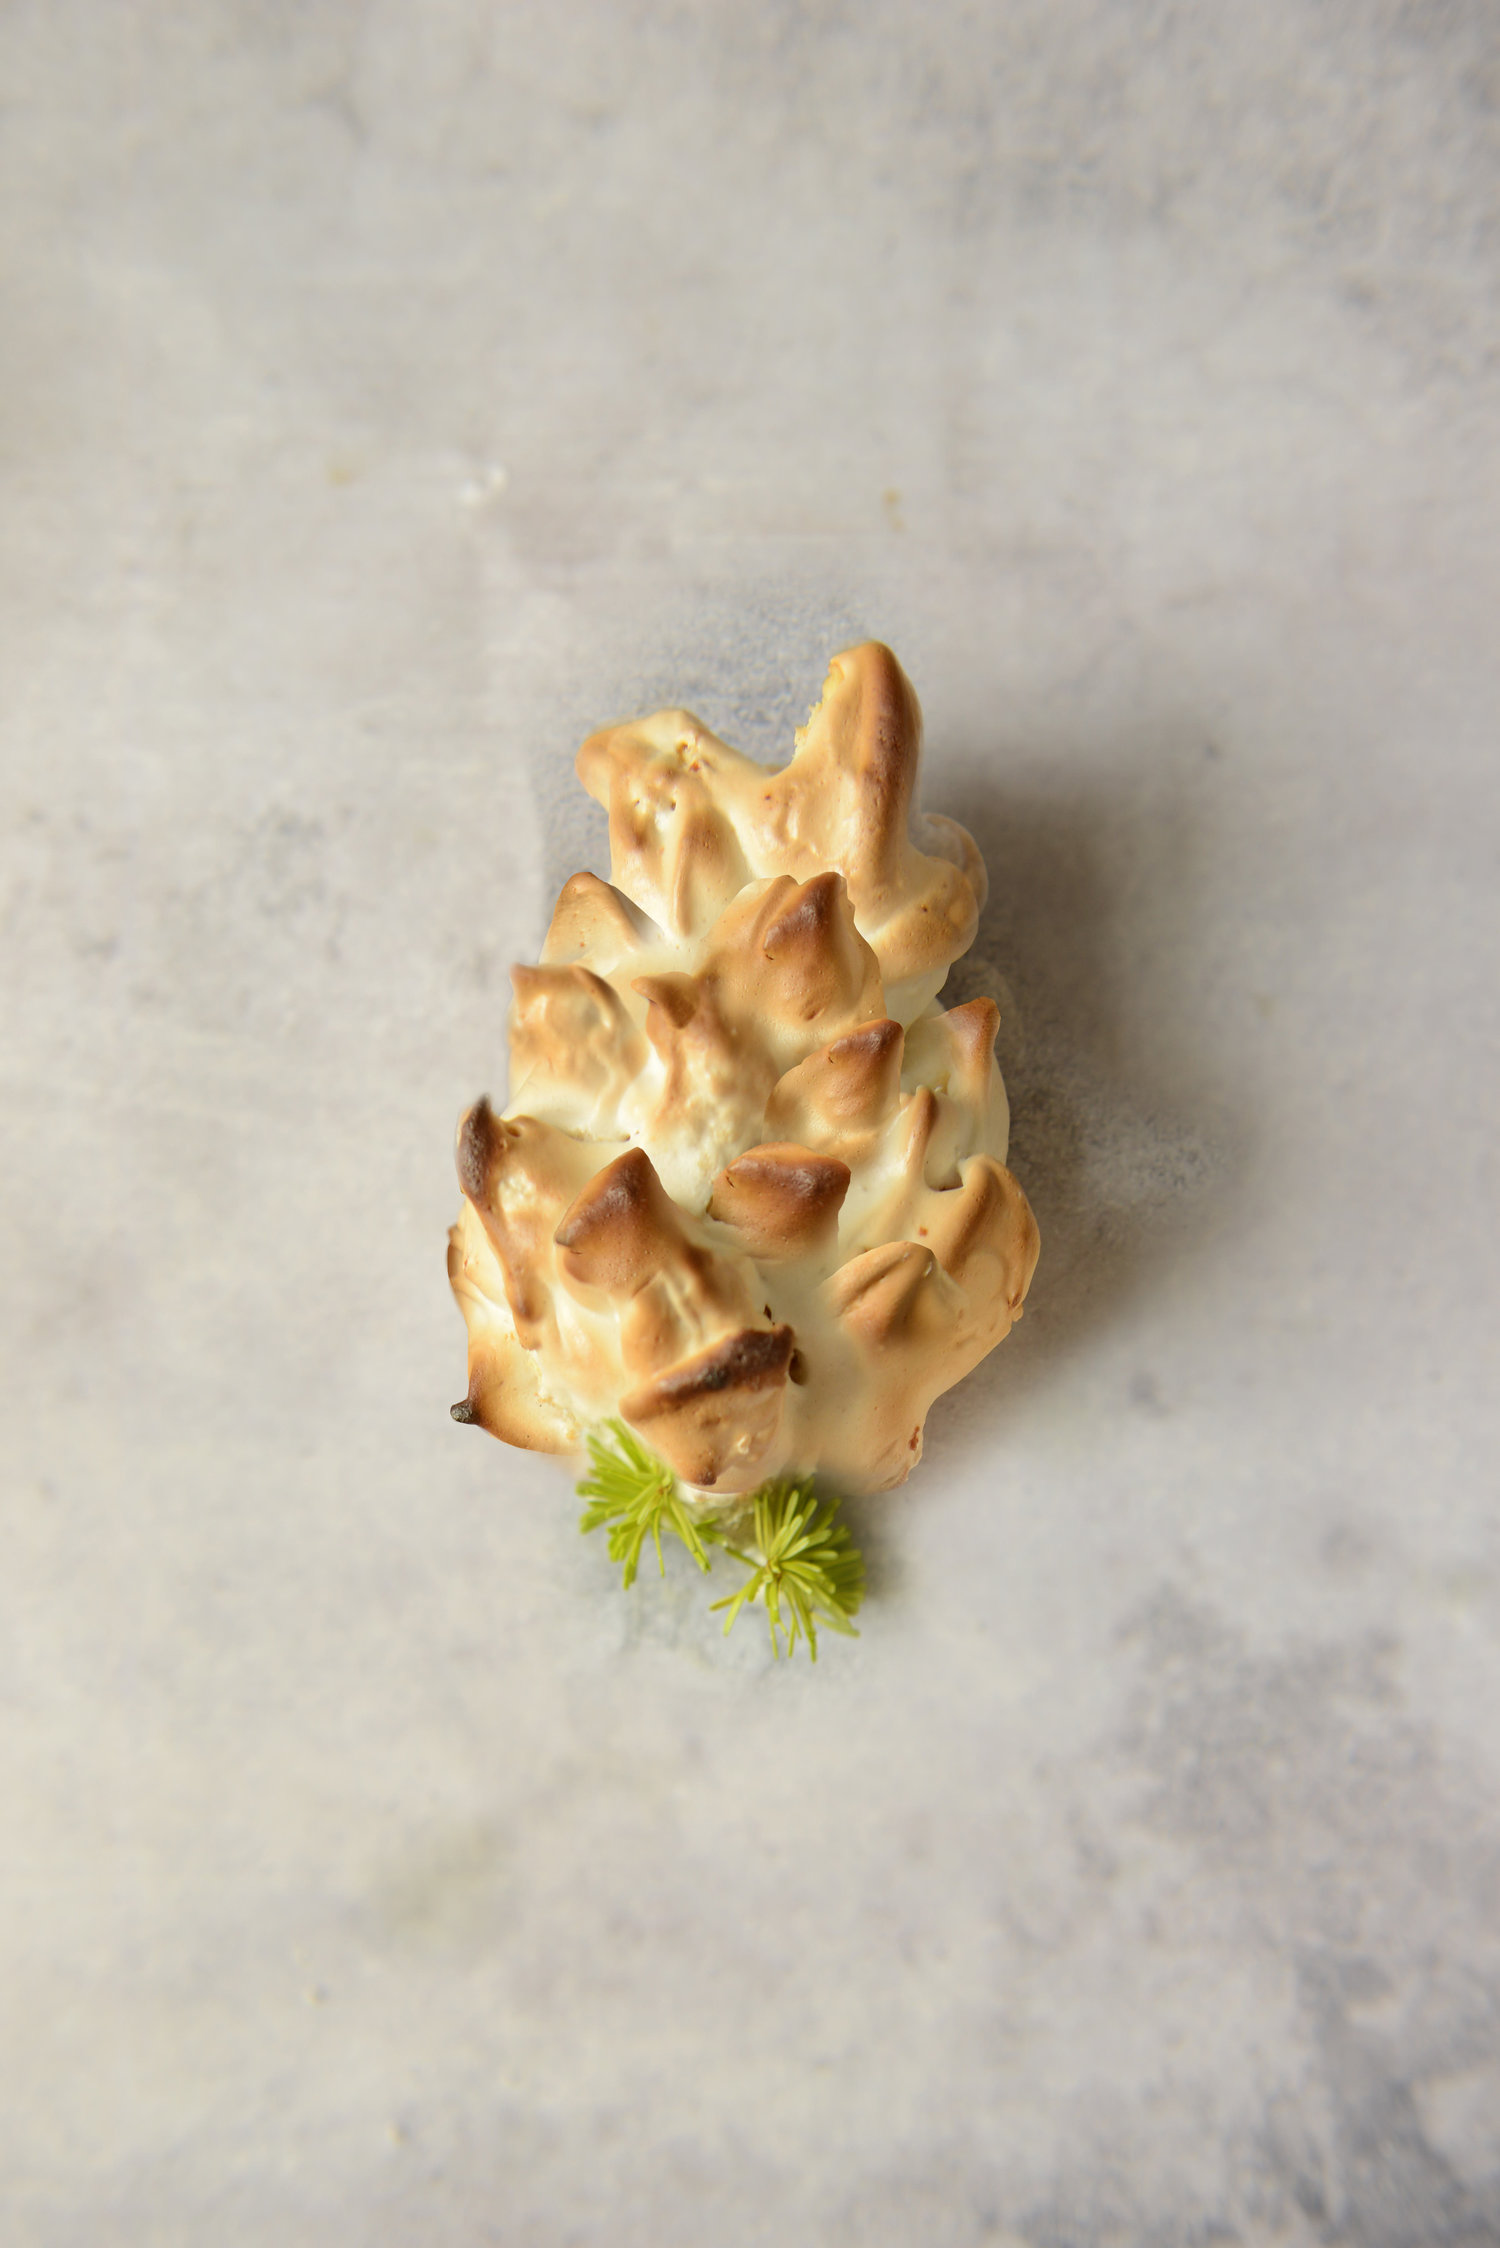 """Fir Cone"" with spruce / fir tip jelly curd filling"